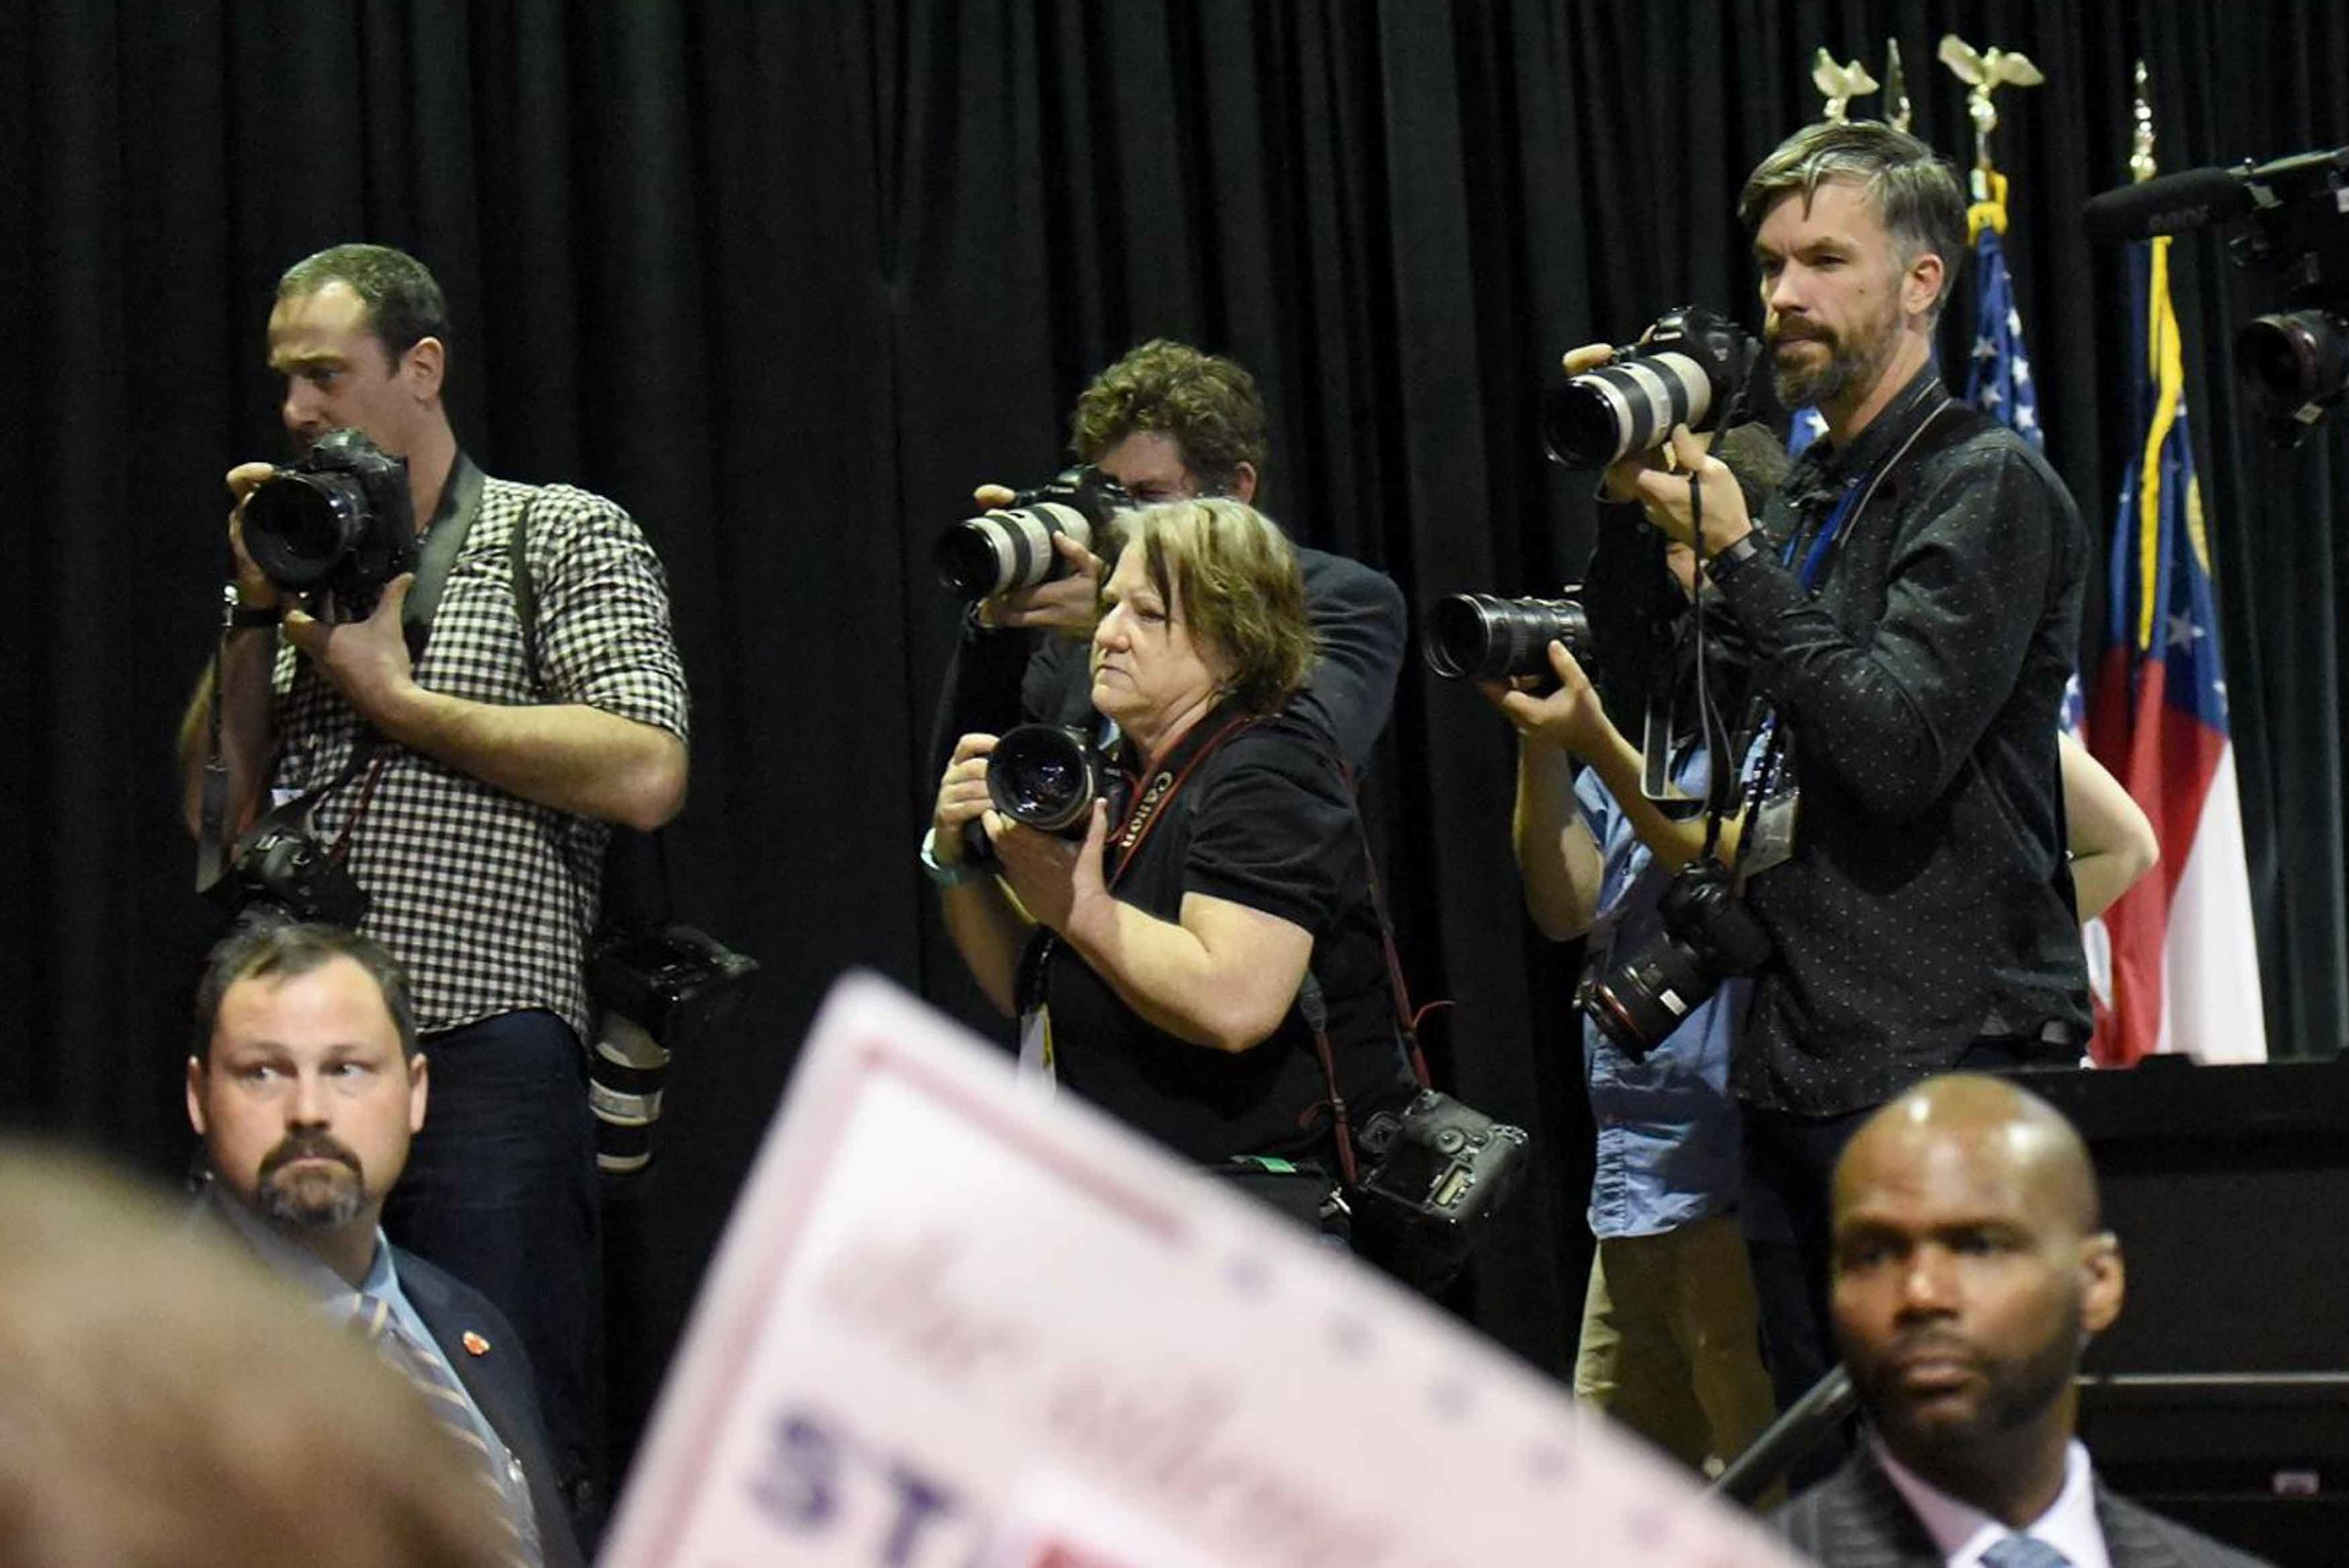 Associated Press photographer David Goldman, left, Getty Images freelance photographer Branden Camp (Me), center back, Reuters freelance photographer Tami Chappell, and New York Times freelance photographer Kevin D. Liles work from the stage as Republican candidate Donald Trump signs autographs for attendees in Atlanta.  Photo by Atlanta Journal-constitution photographer Hyosub Shin